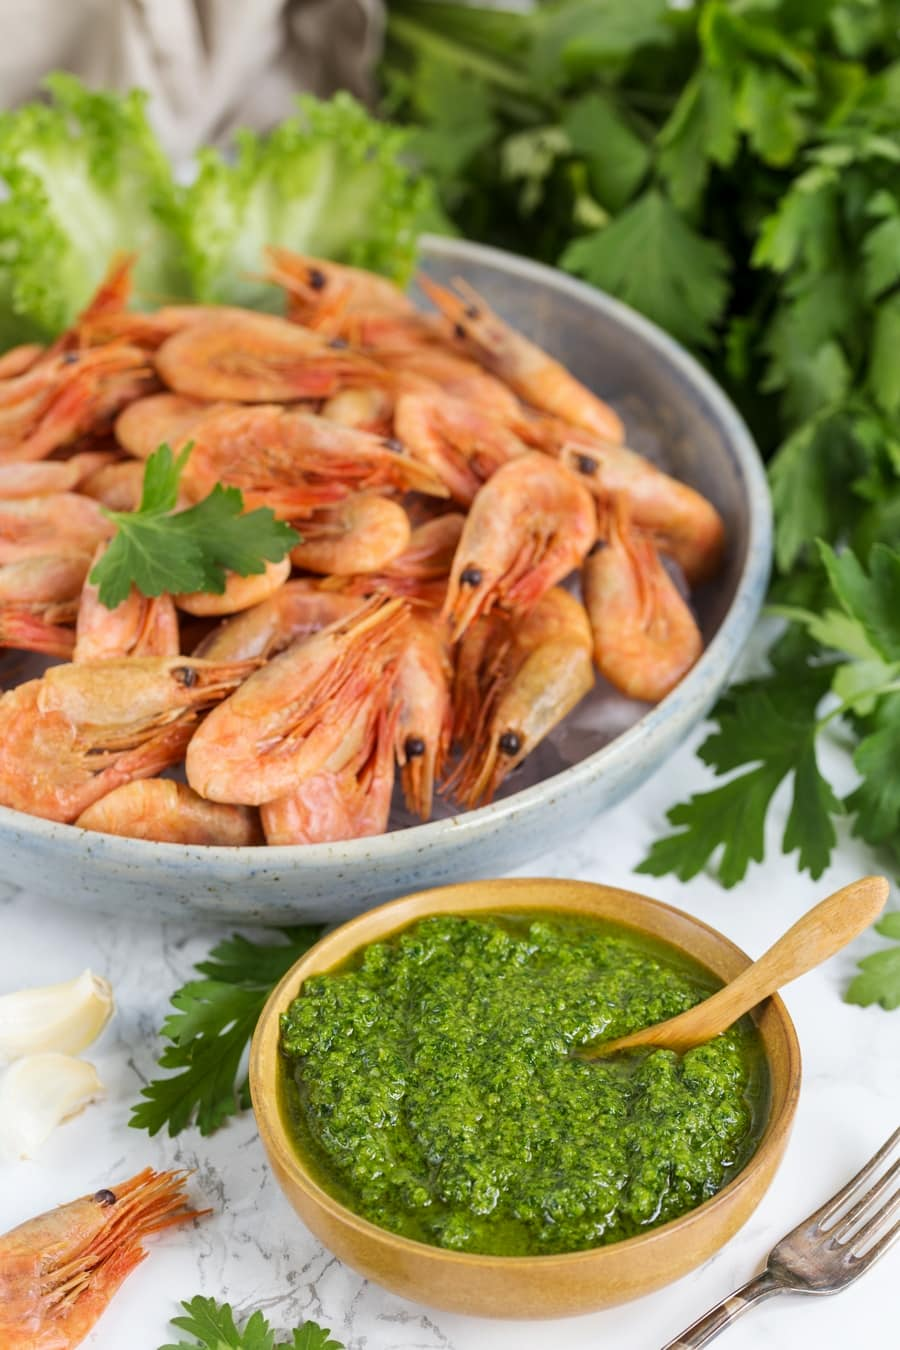 A small bowl of nordic pesto and a large bowl filled with smoked shrimp.